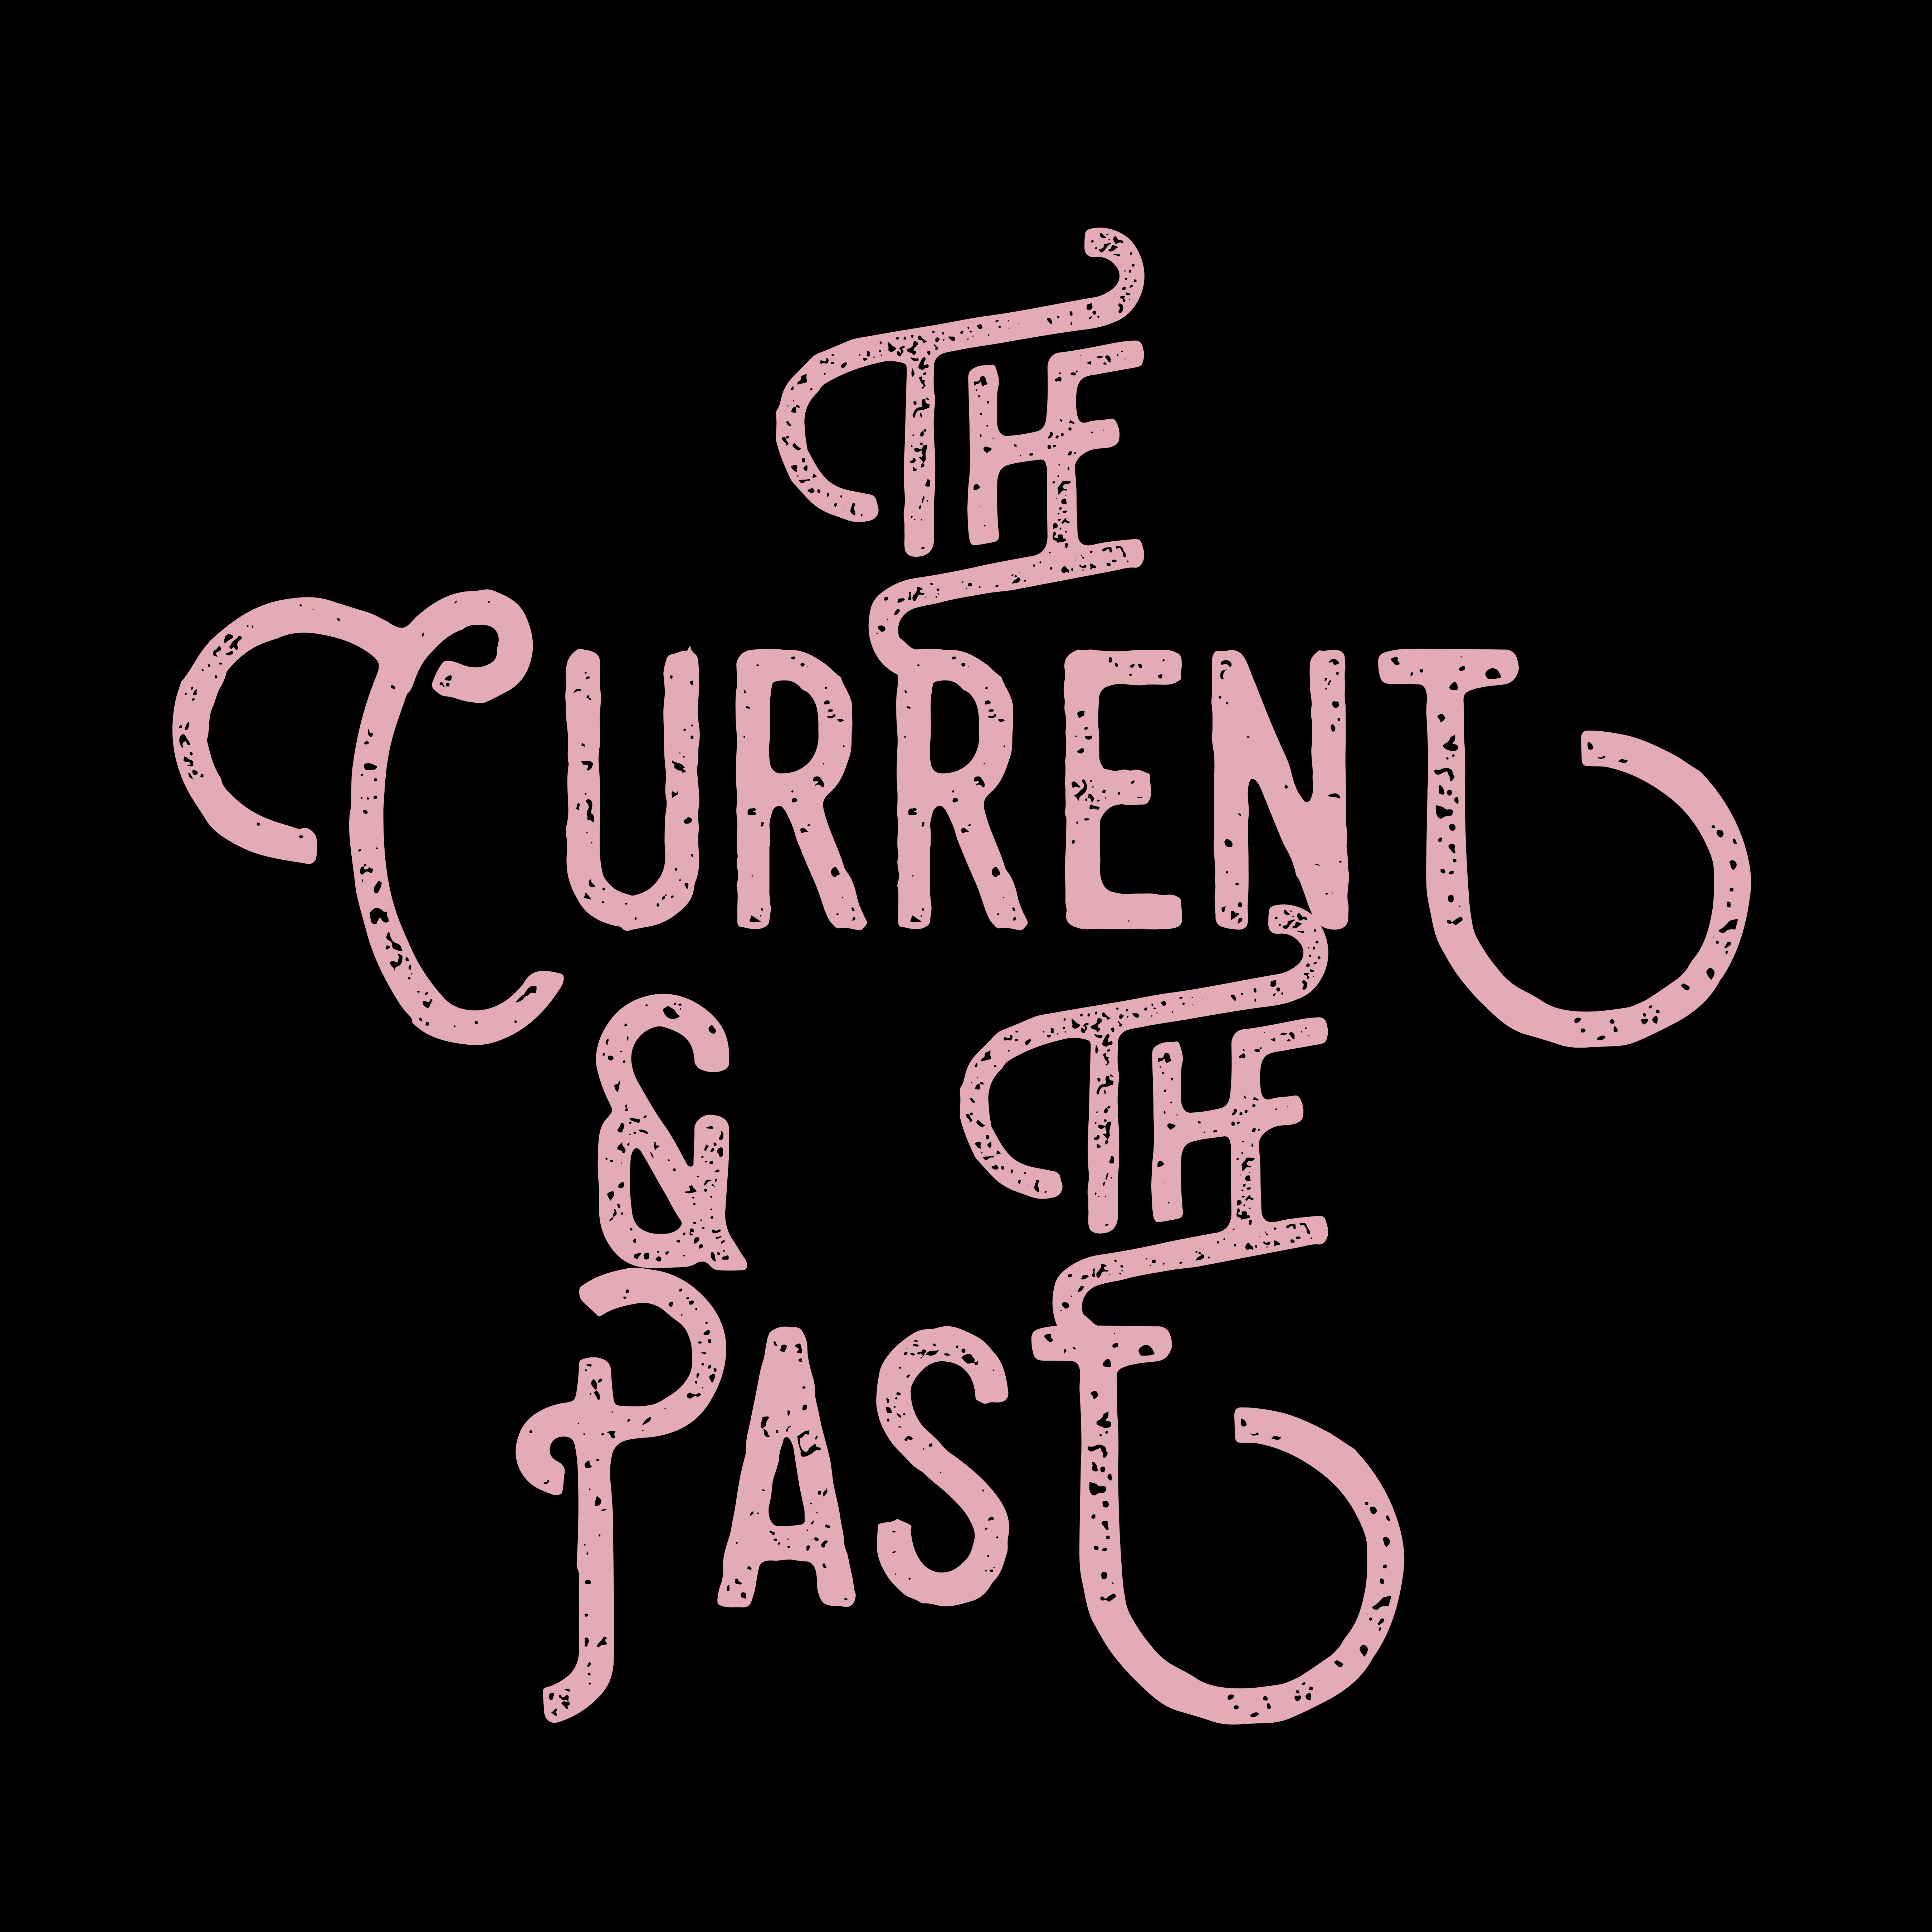 https://mendthevow.com/the-current-the-past/